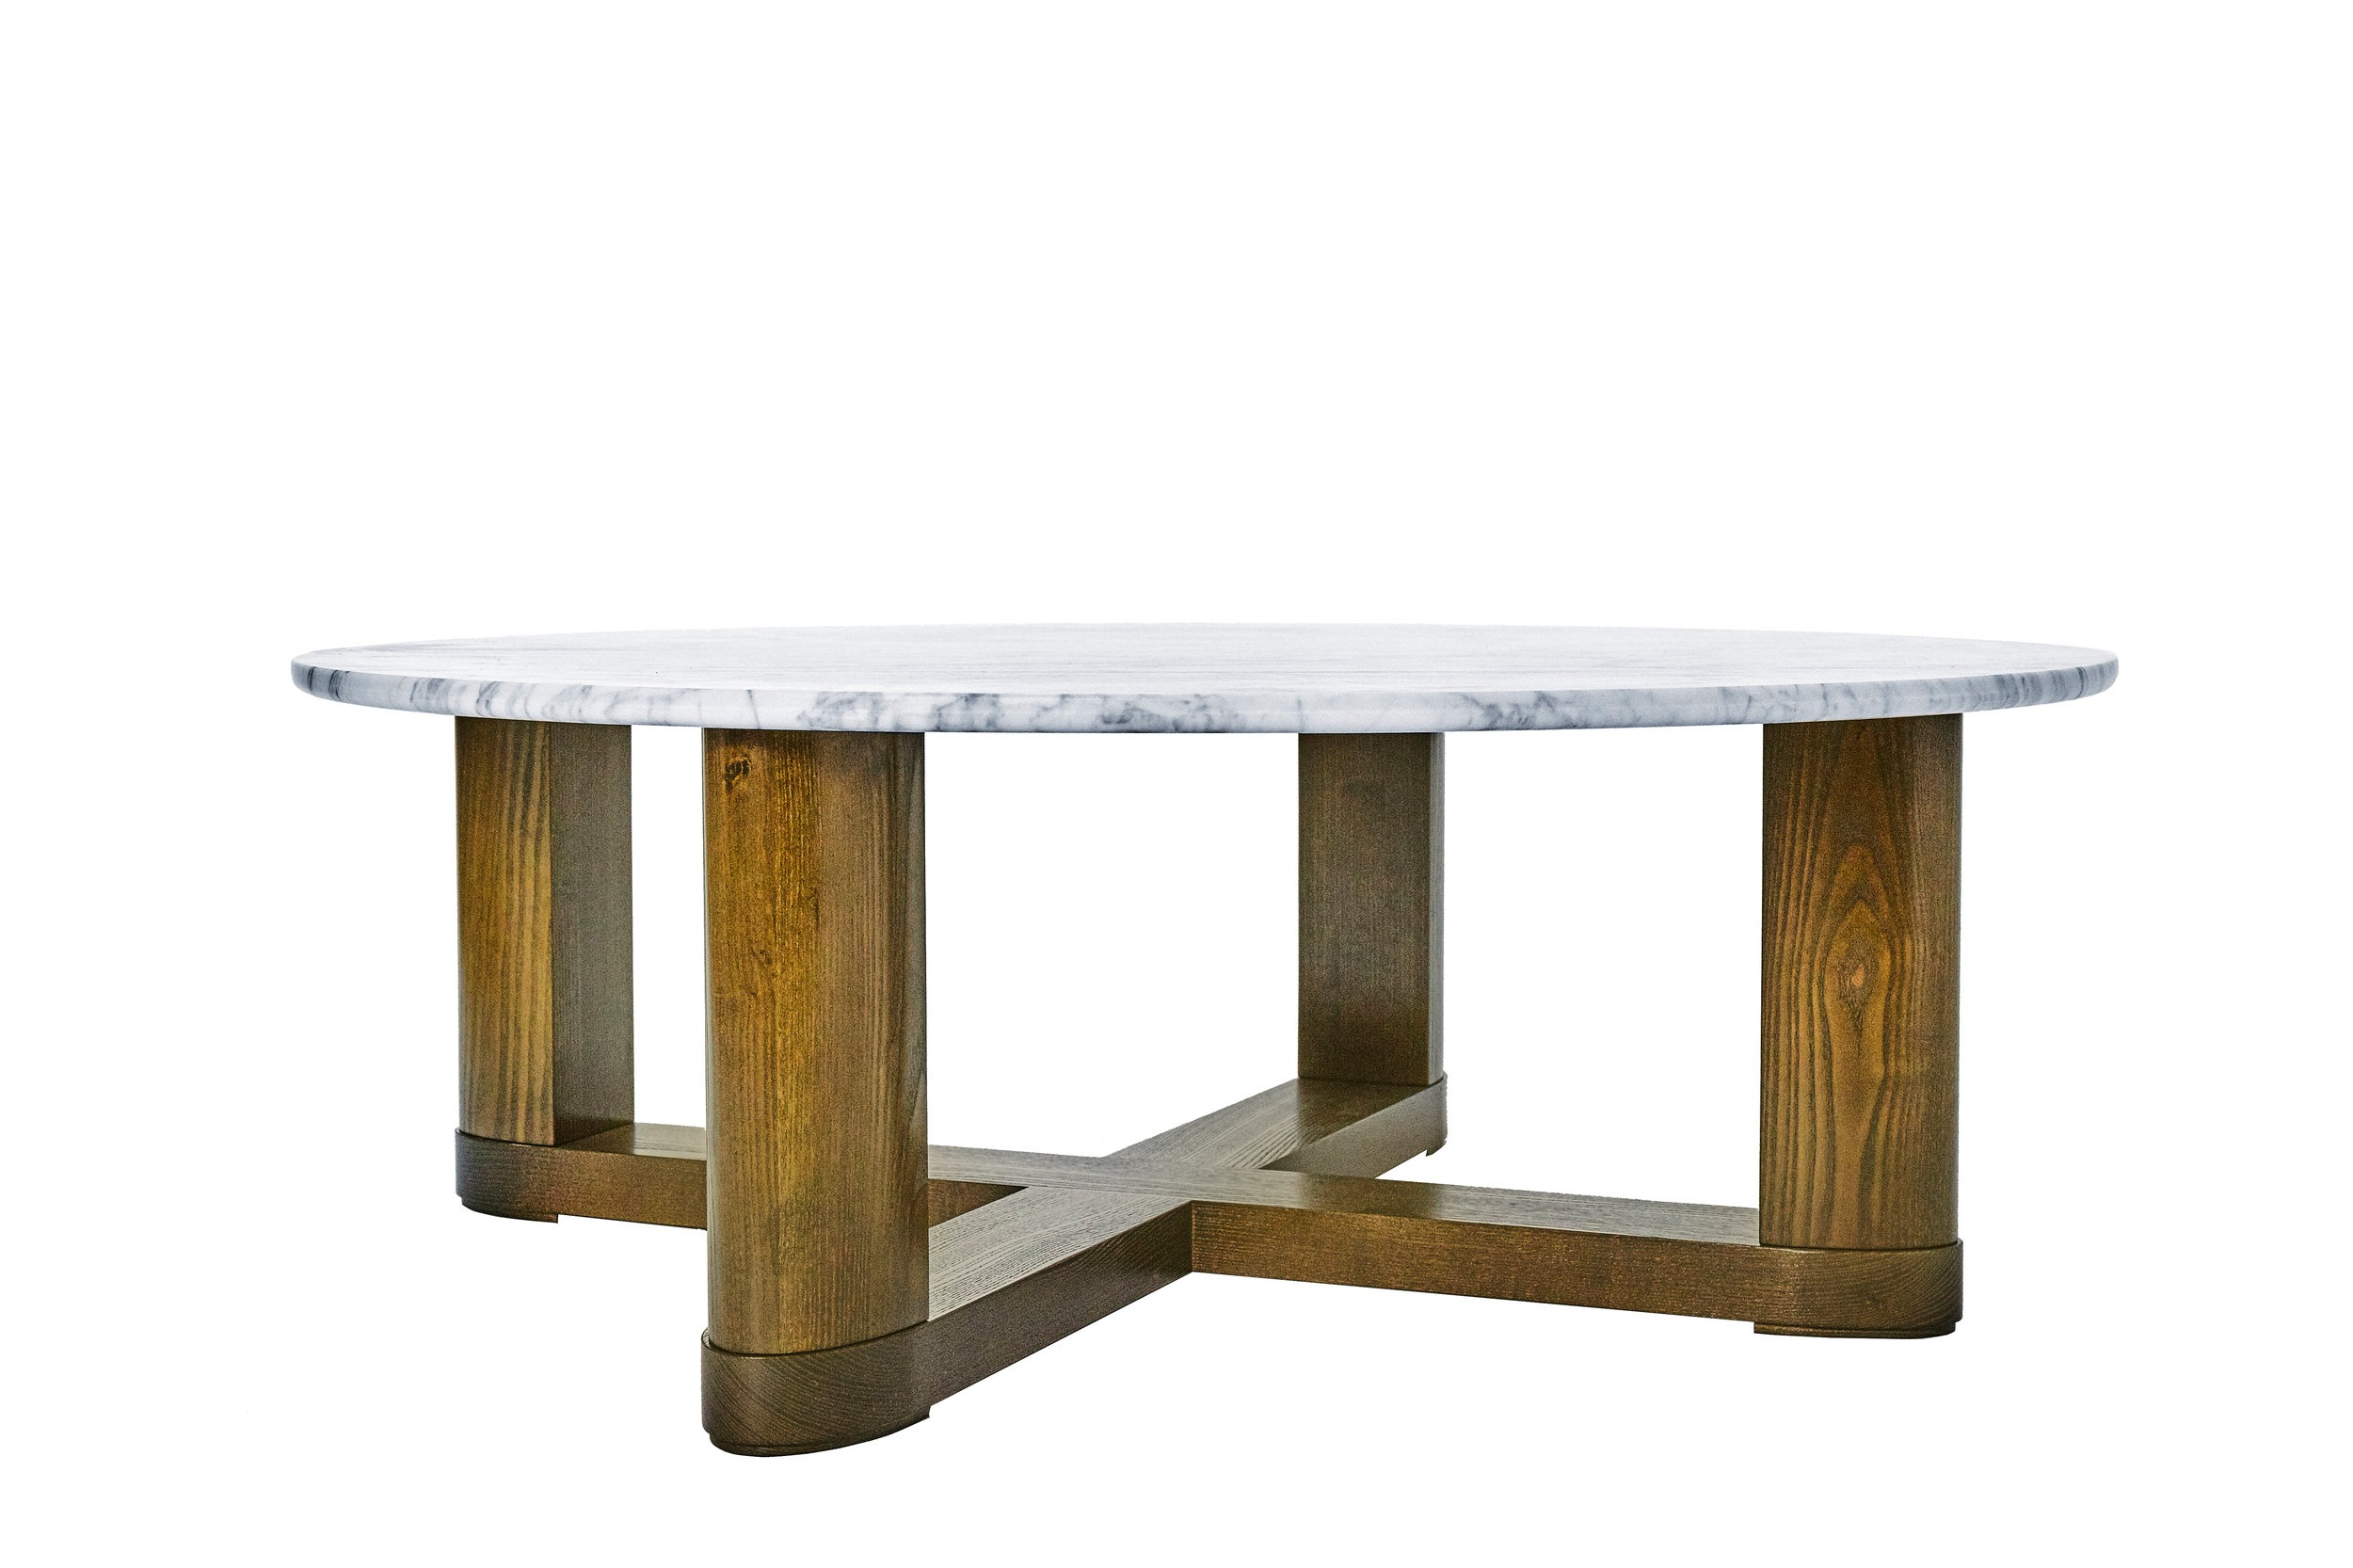 HULL+COFFEE+TABLE+ROUND+40%2522_KELP_ASH_+FRONT_2.jpg